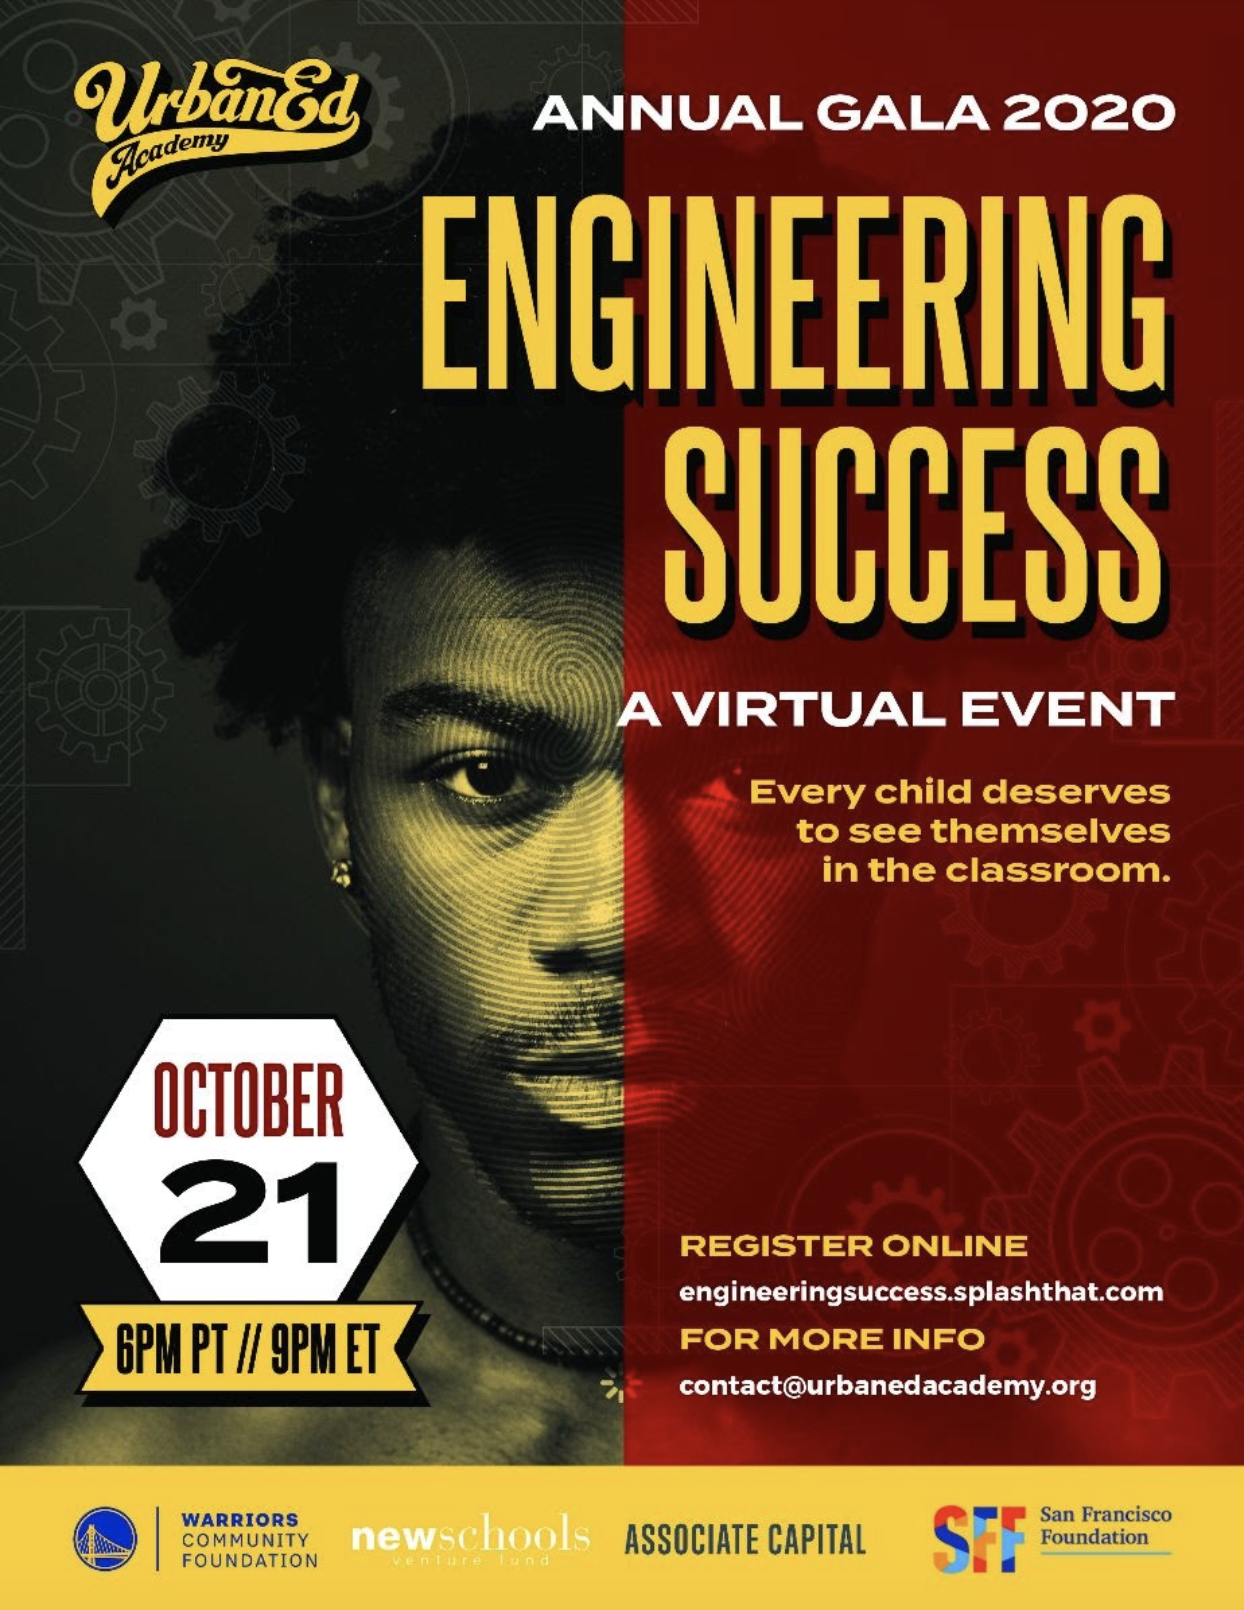 Join us for our 2020 Annual Gala - Engineering Success, A Virtual Event on October 21, 2020 at 6 PM Pacific Time